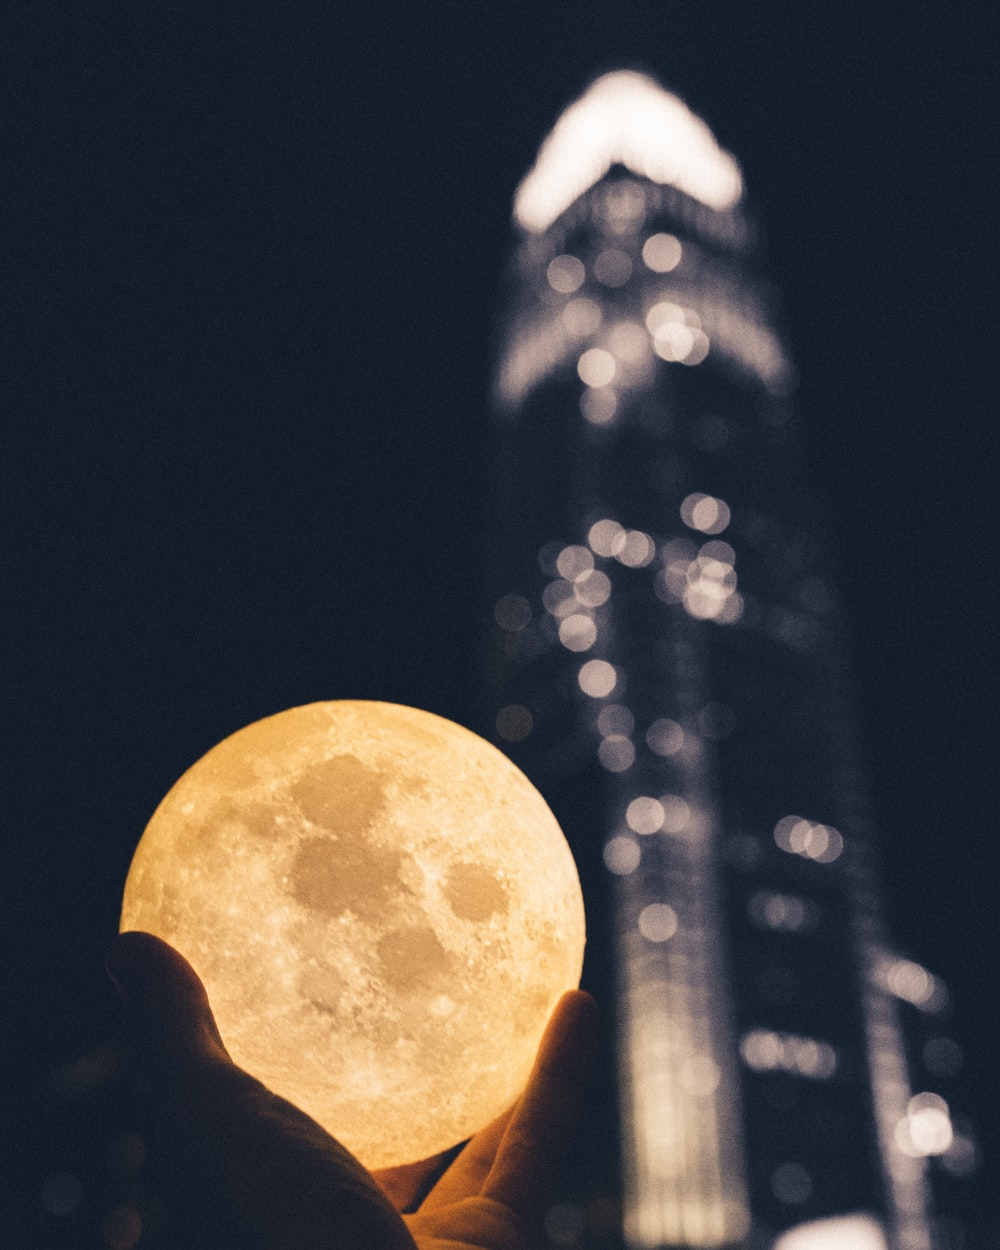 full moon over city buildings during night time